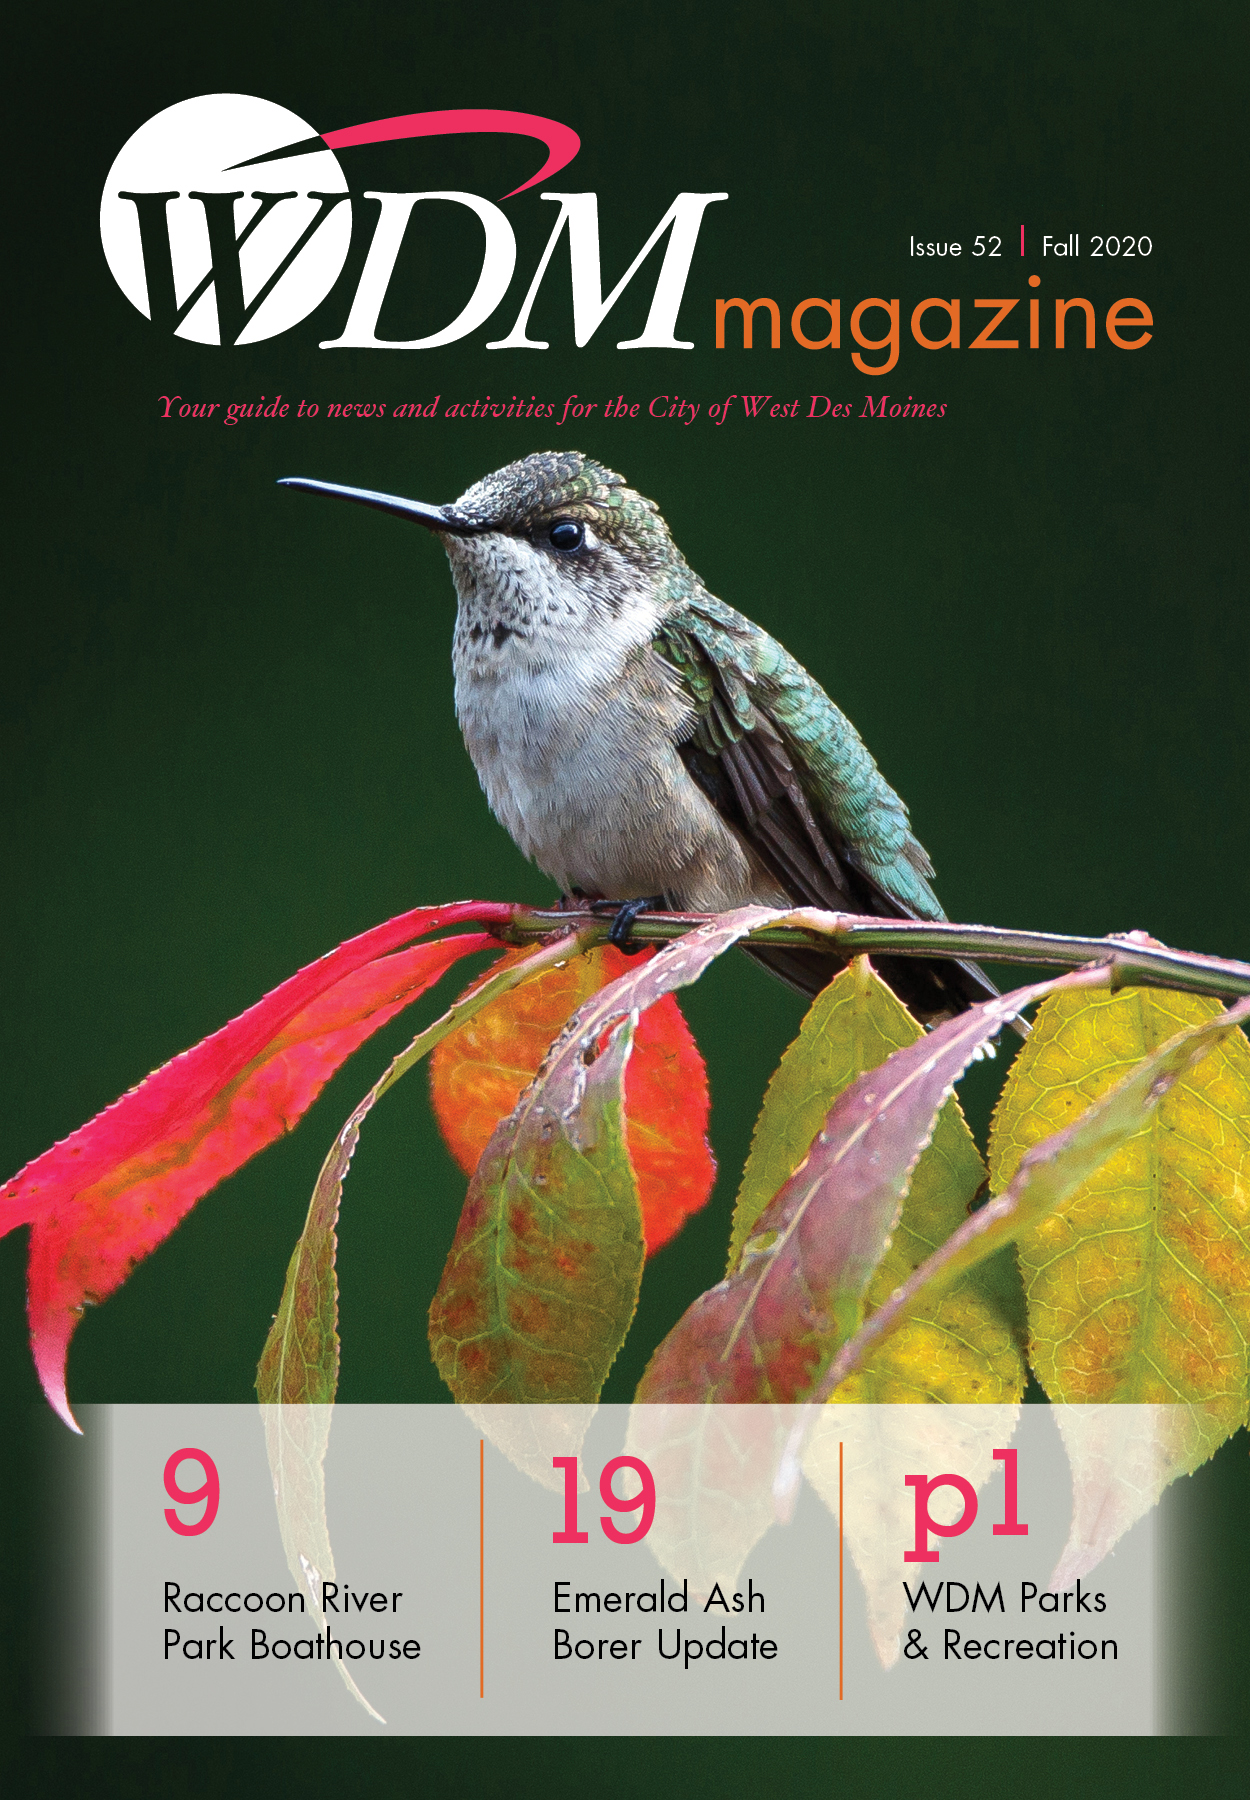 WDM Magazine cover for Fall 2020 issue 52